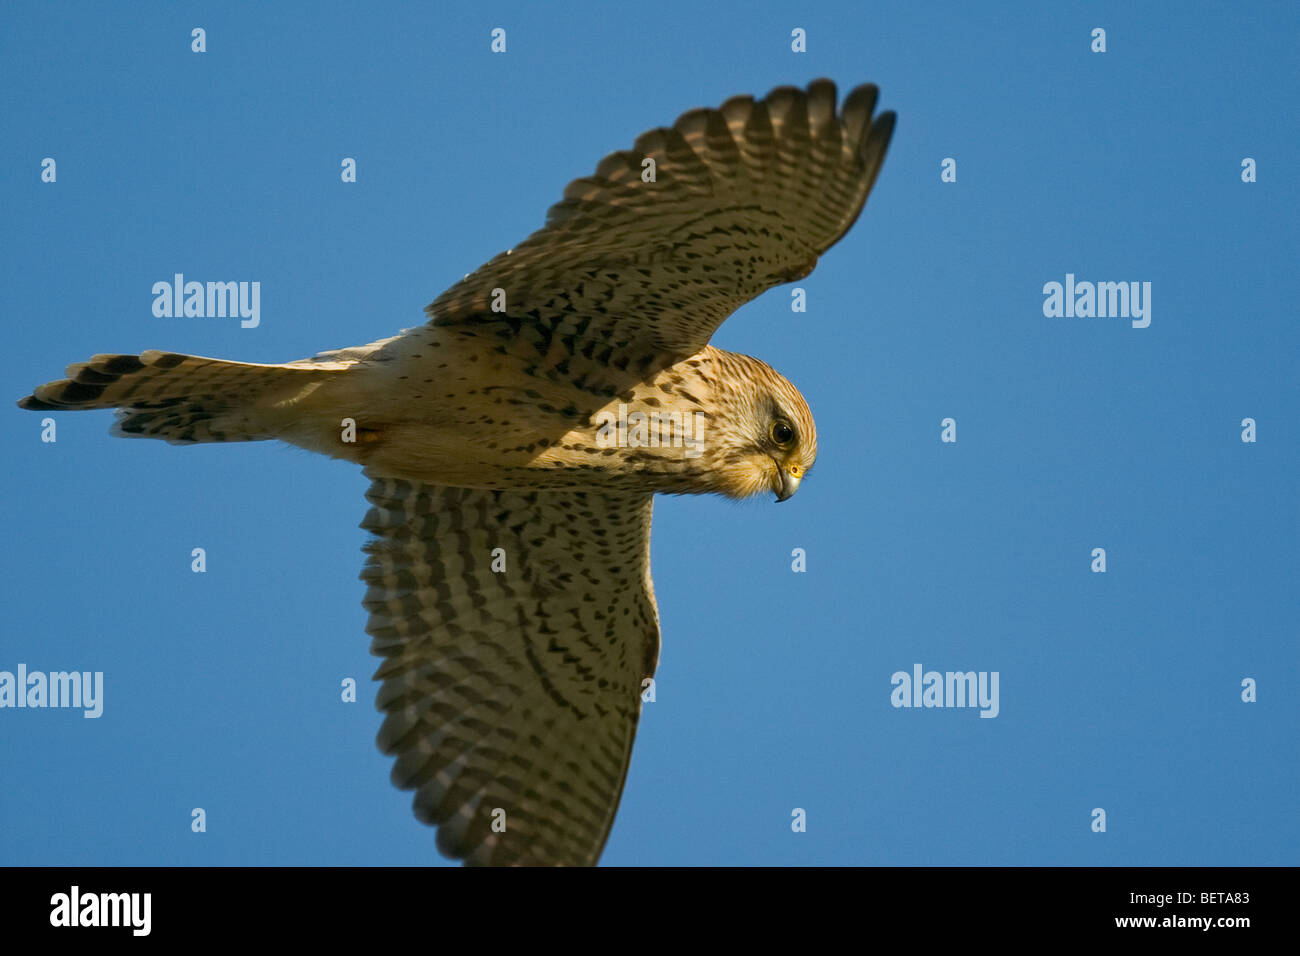 Common kestrel (Falco tinnunculus) adult female hovering while hunting - Stock Image